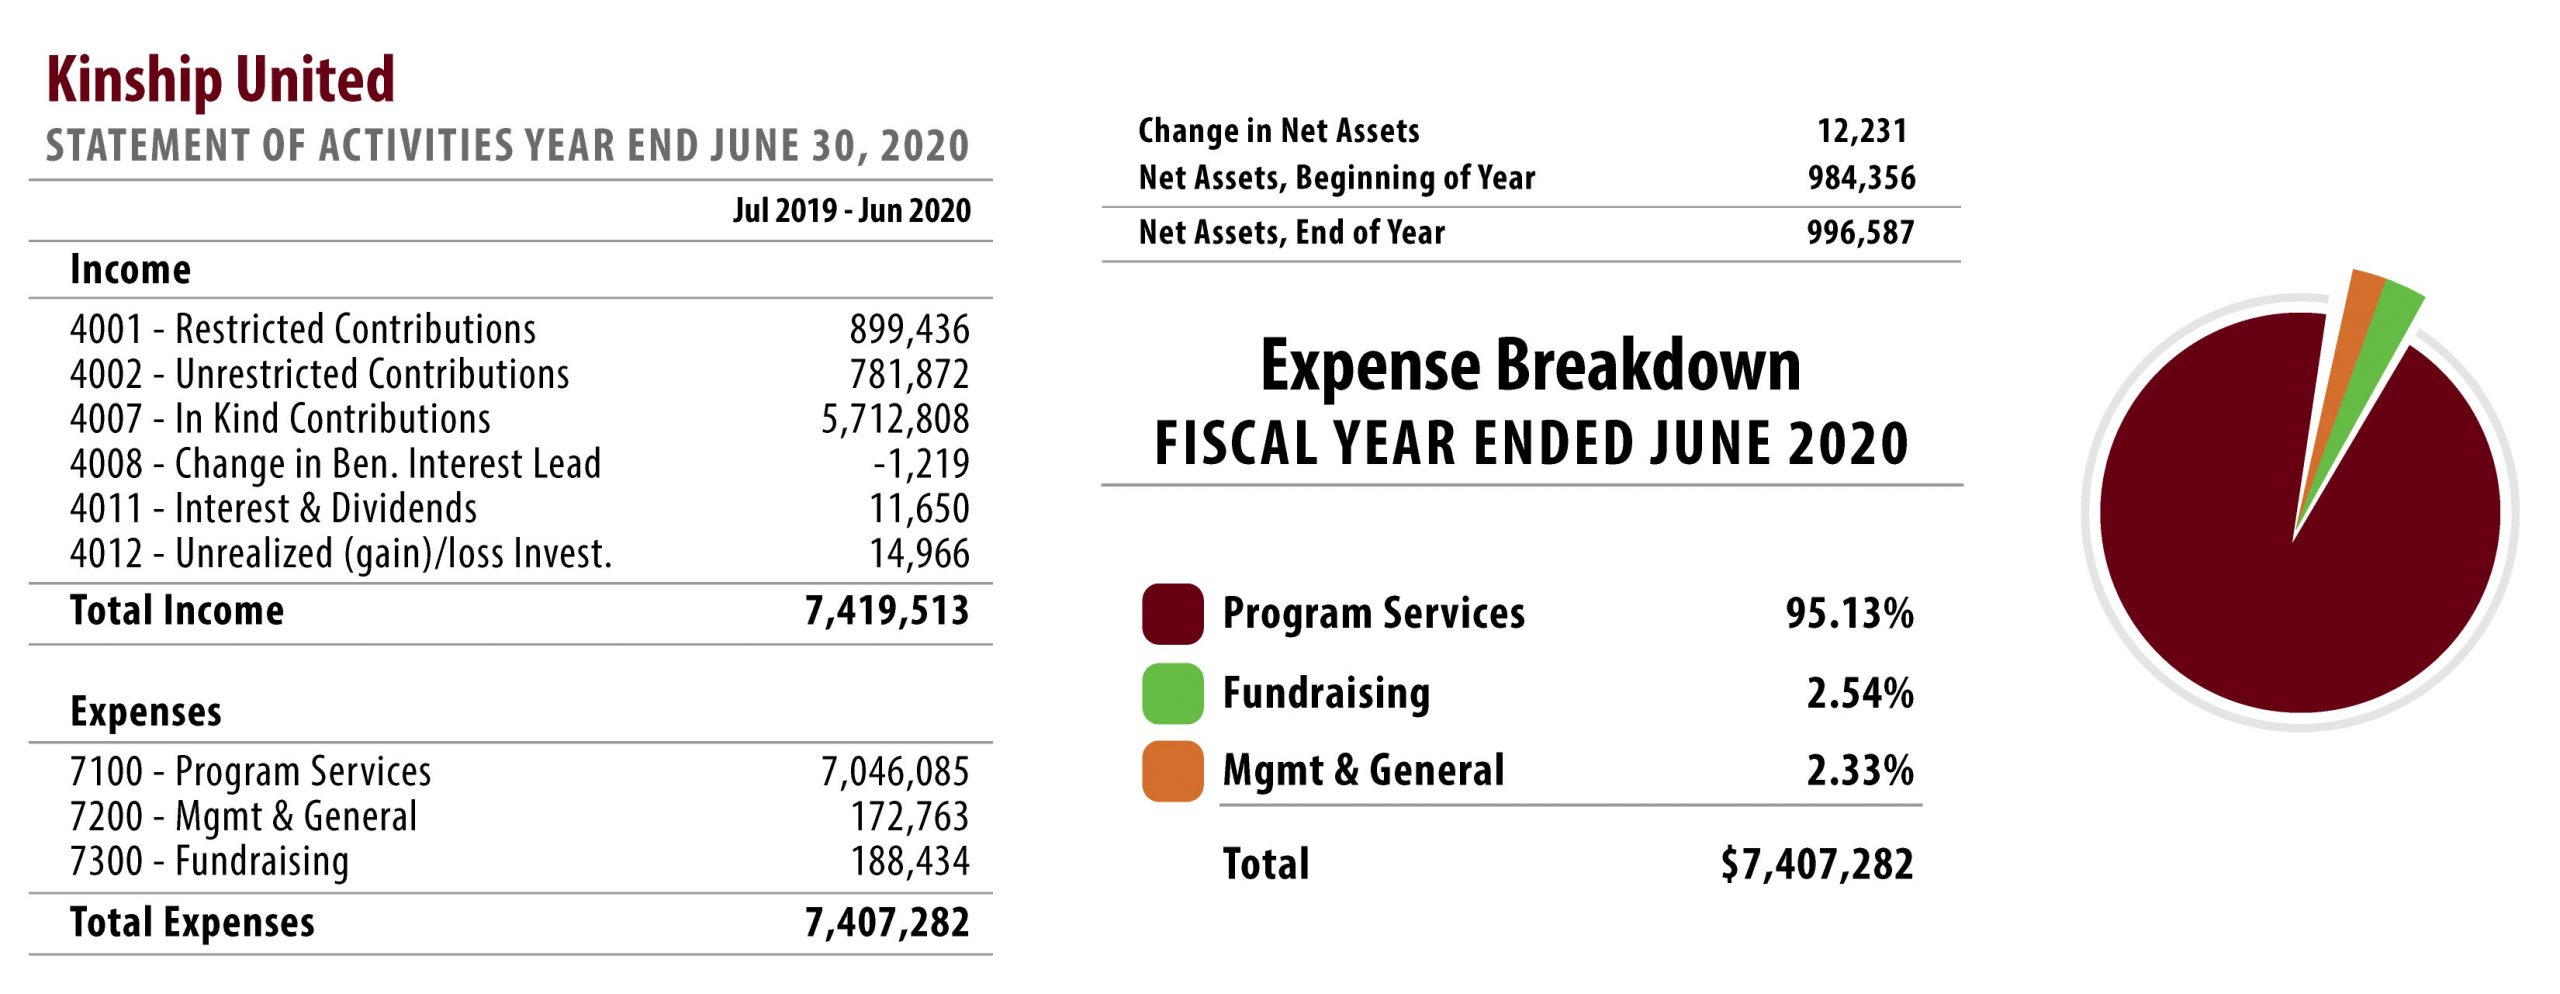 Kinship United's statement of activities and a pie chart depicting our expense breakdown for the fiscal year ending in June 2020.